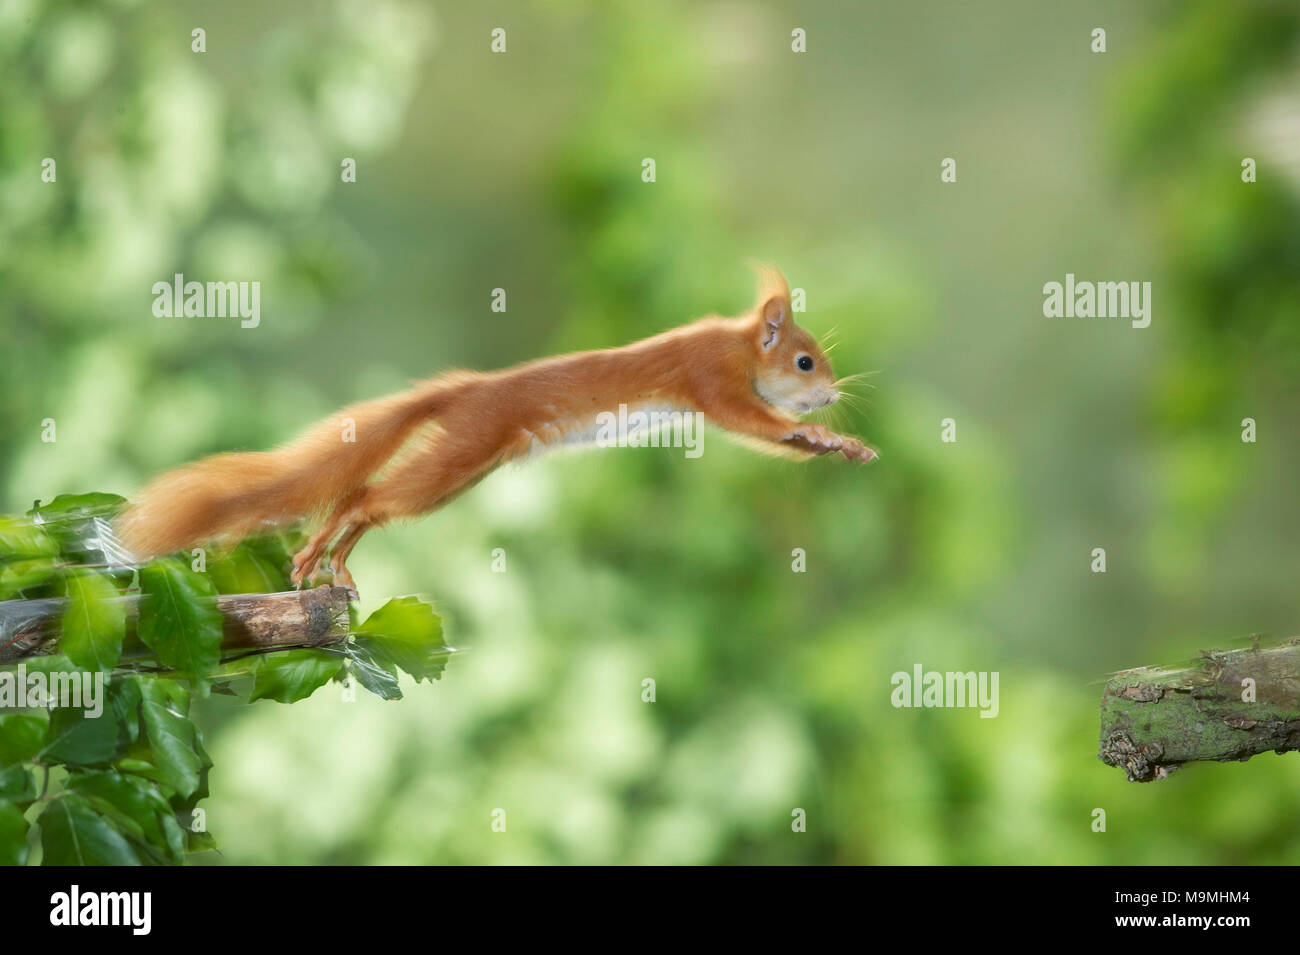 European Red Squirrel (Sciurus vulgaris) jumping from one branch to another. Germany - Stock Image